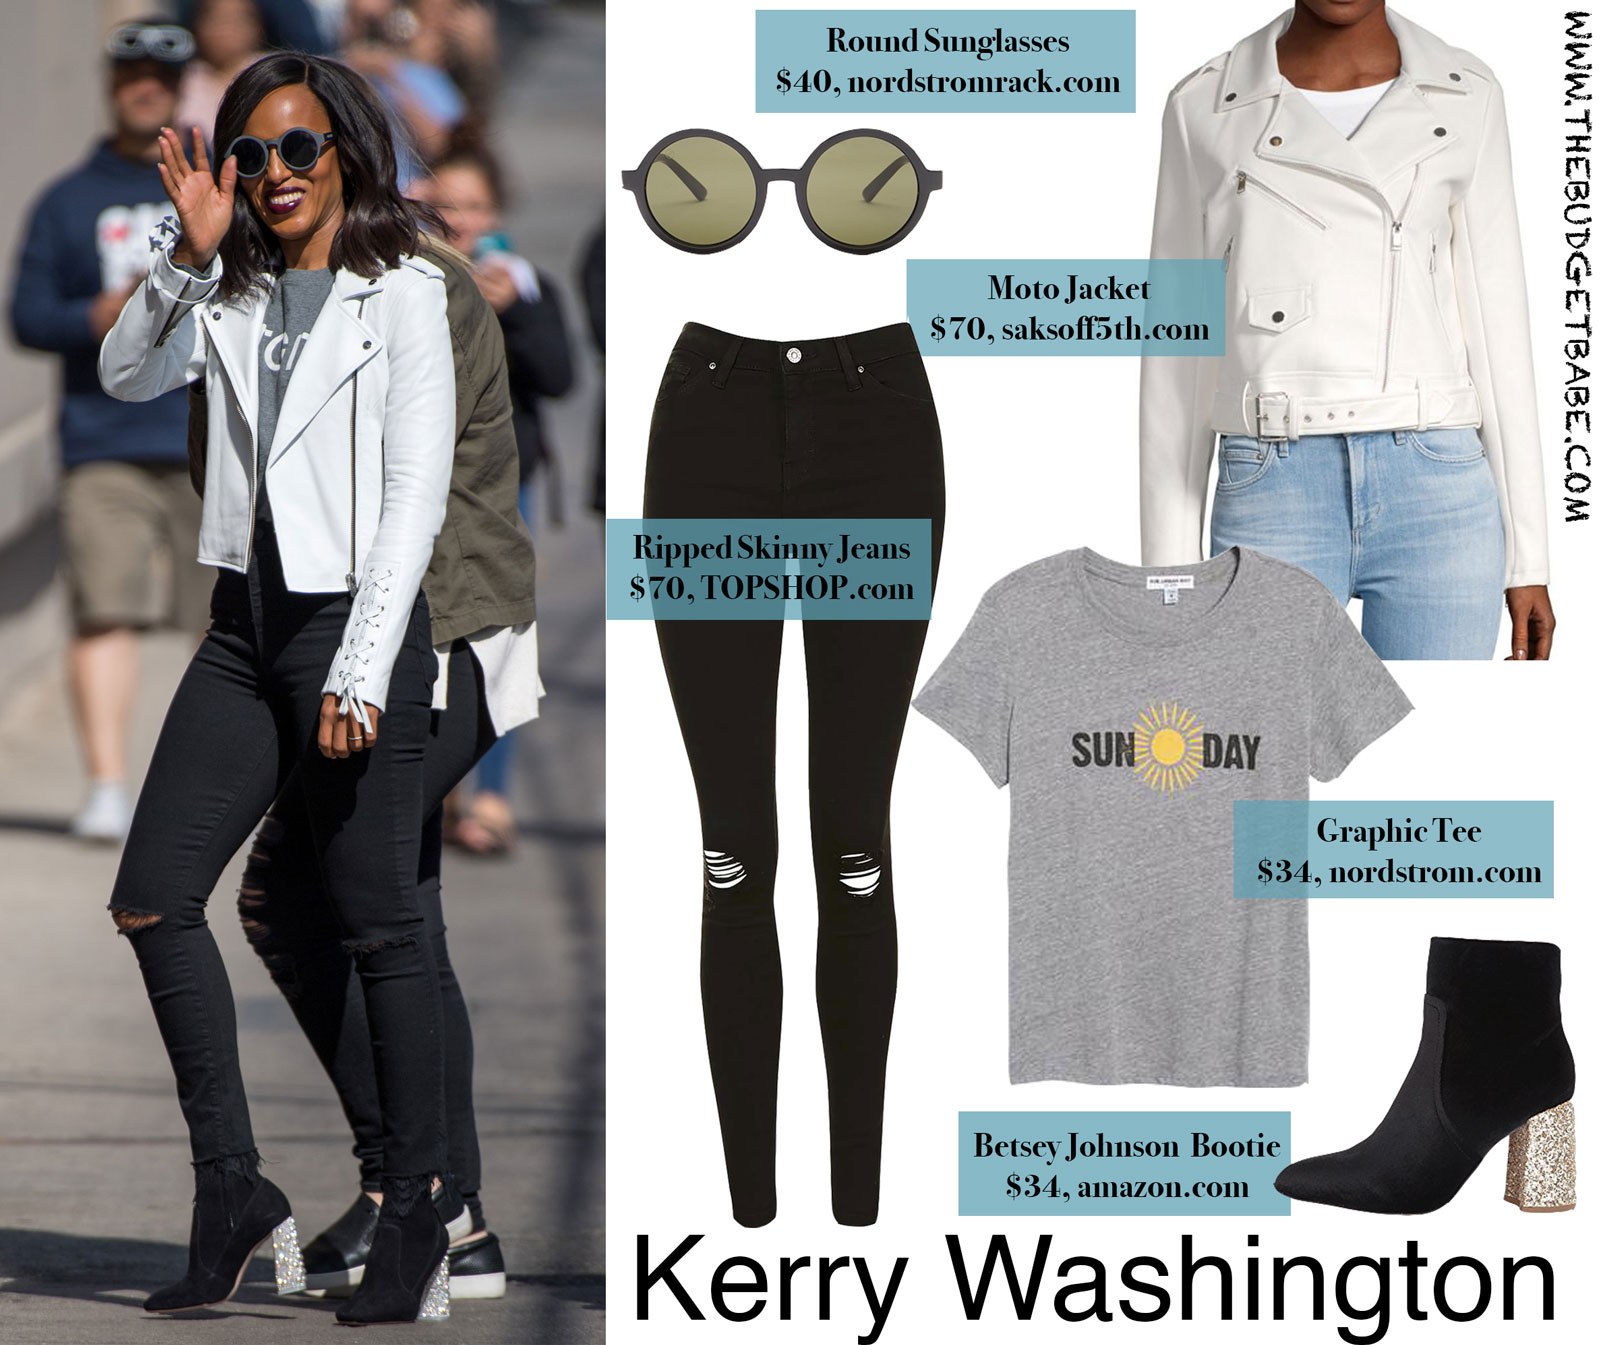 Kerry Washington White Moto Jacket and Glitter Heel Bootie Look for Less